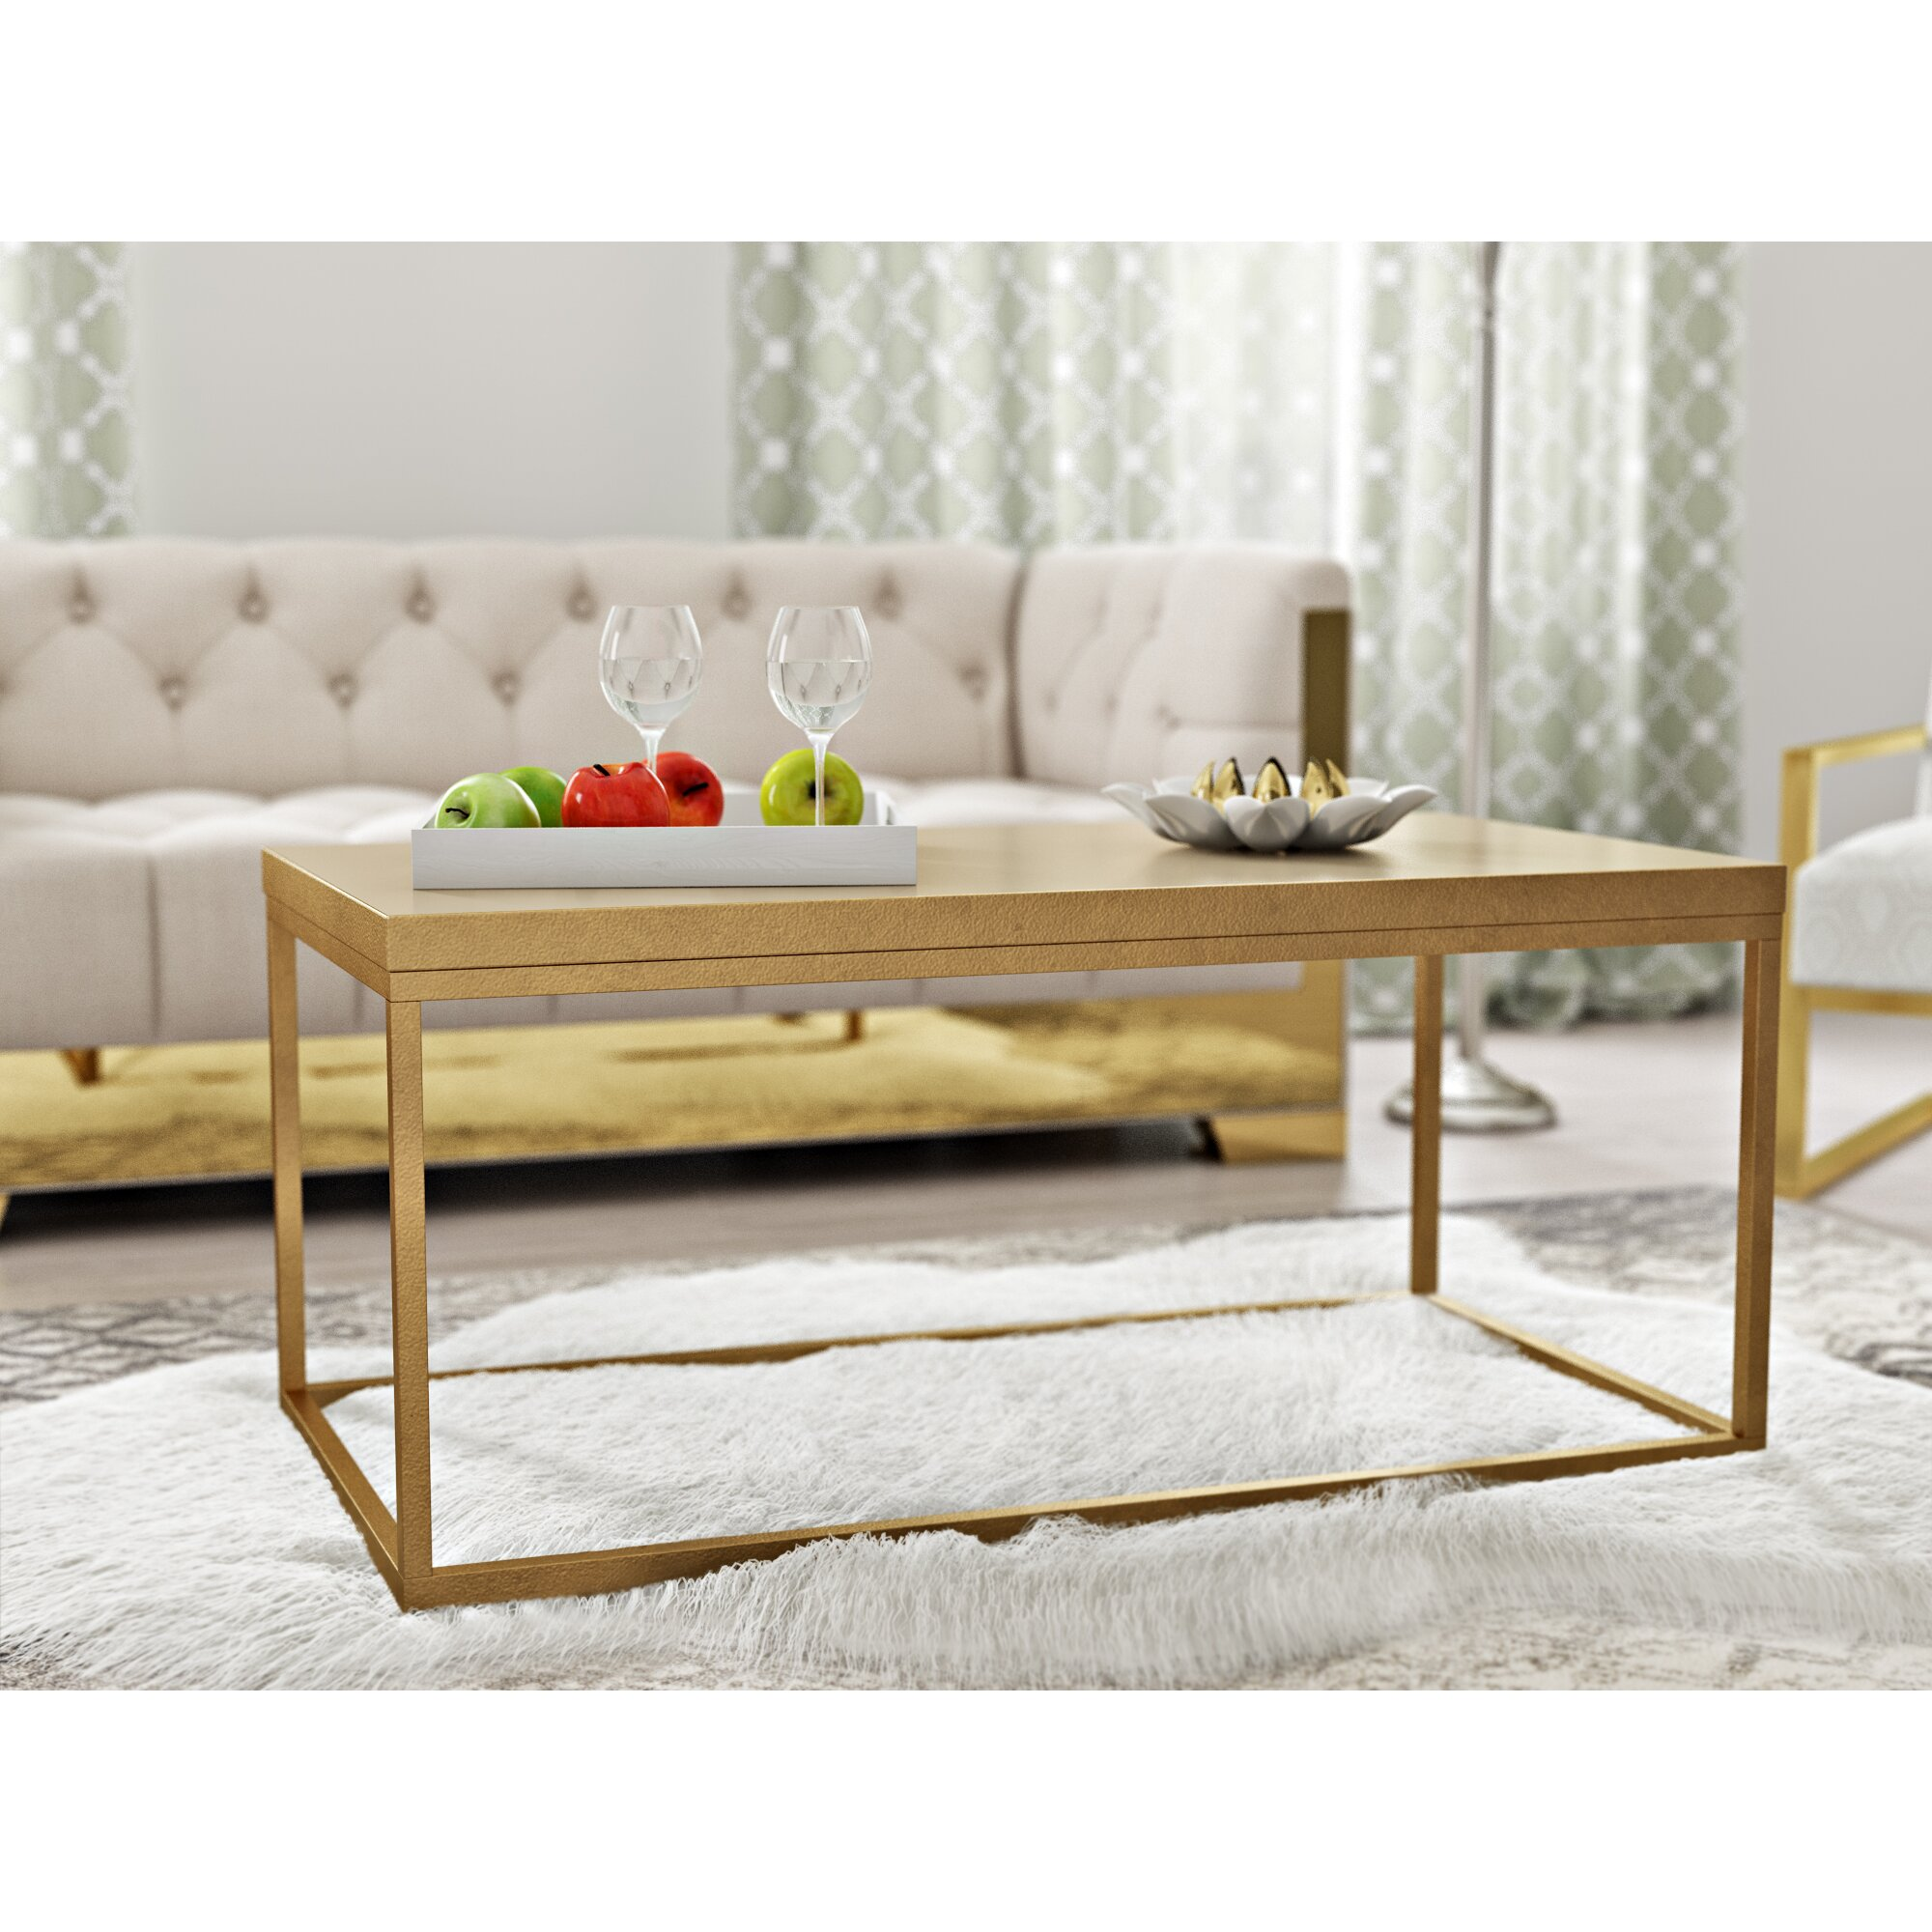 Mercer41 Hecht Coffee Table Reviews